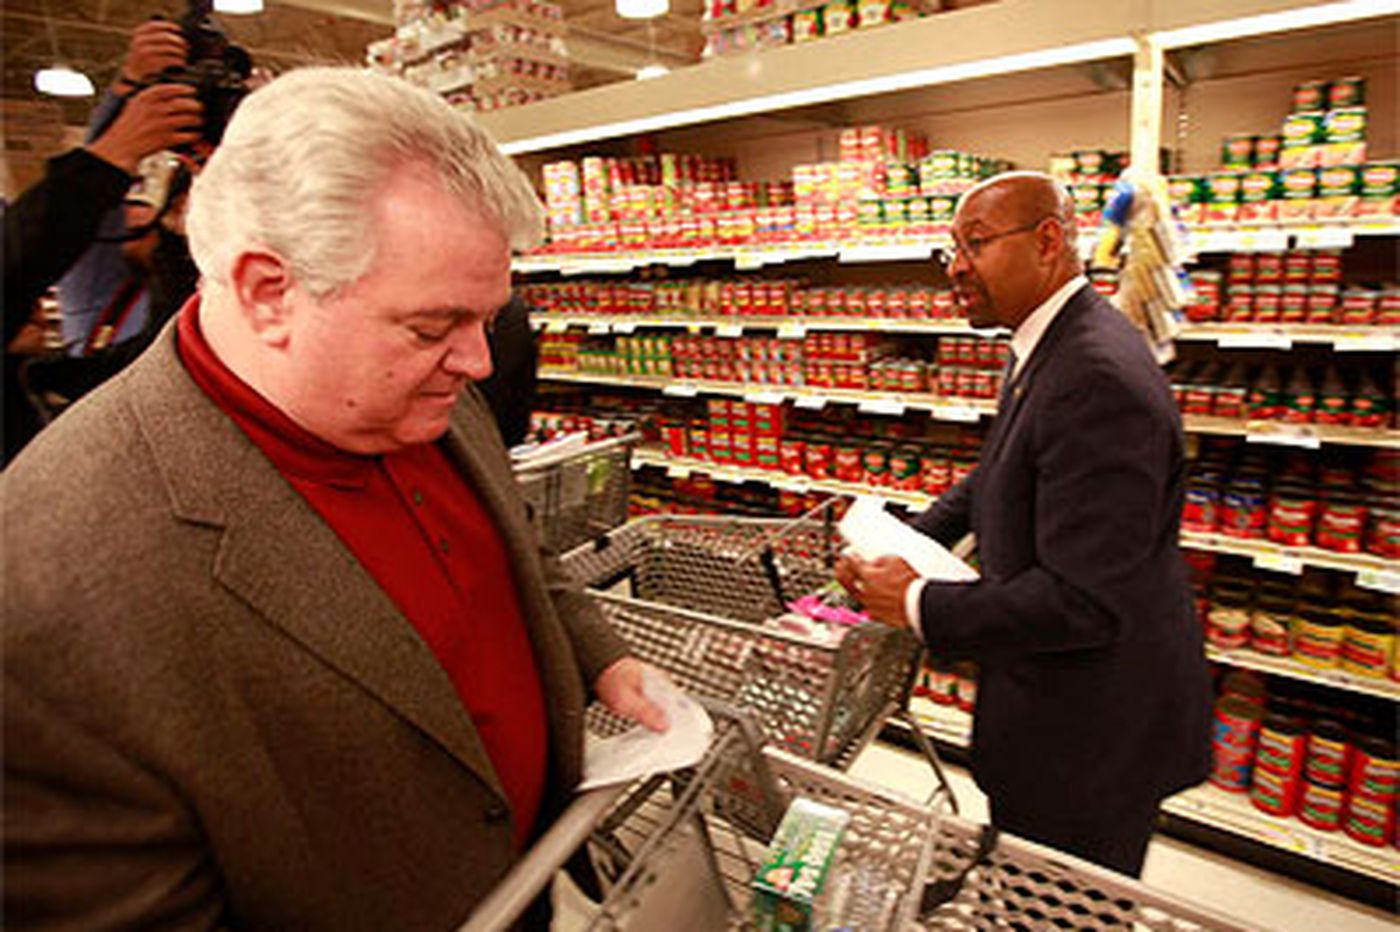 Stu Bykofsky: Bob Brady sees that hunger is no game